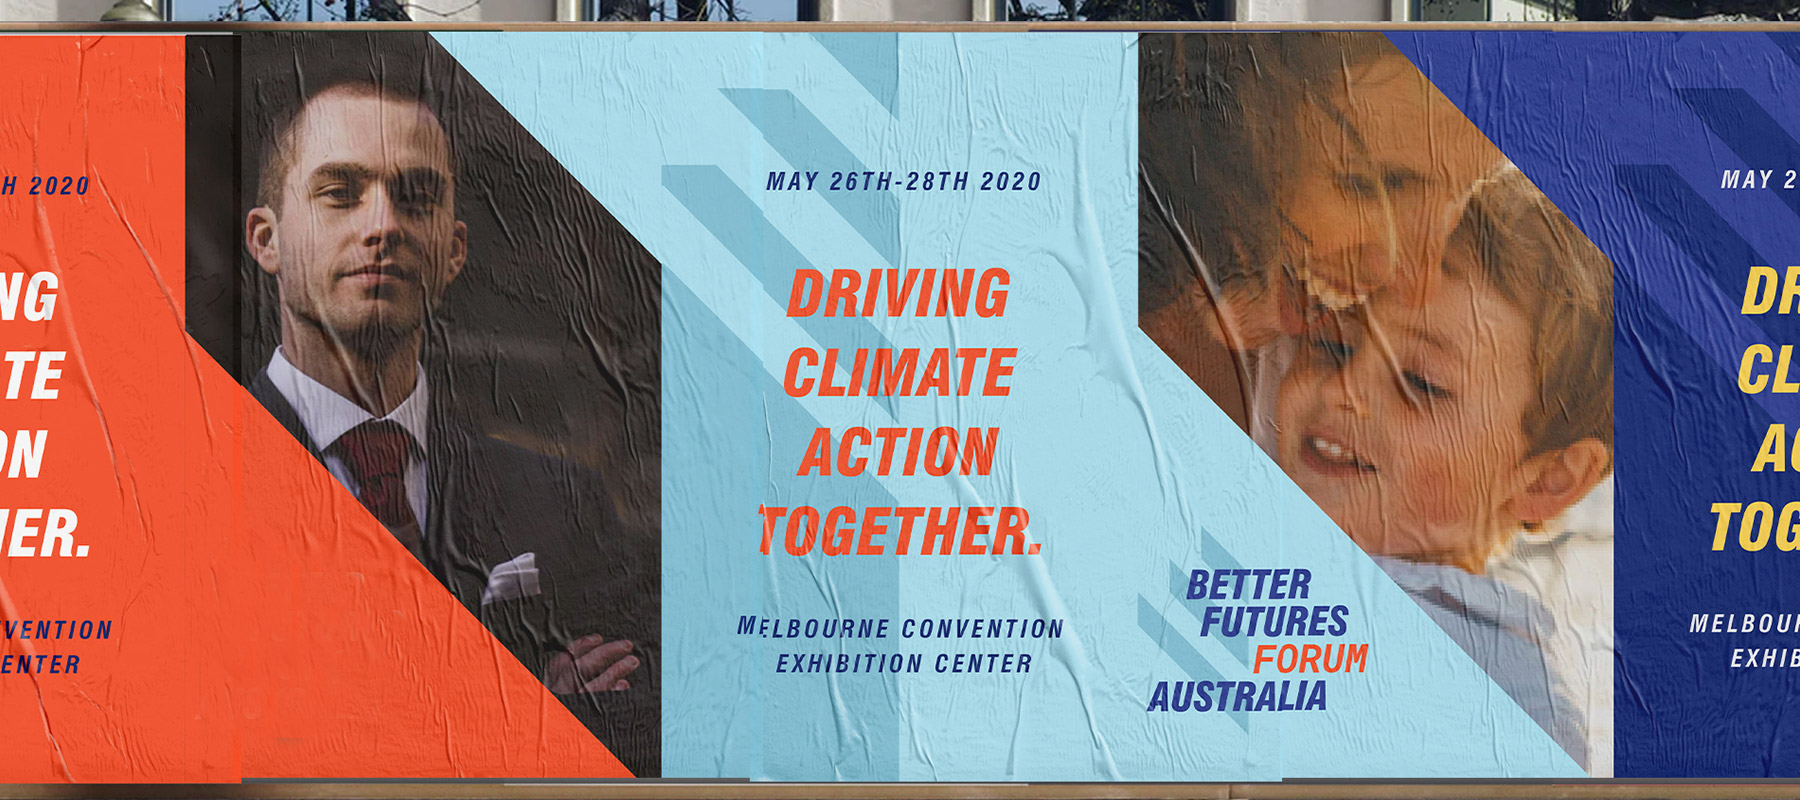 Better Futures|Bringing together climate champions from all walks of life